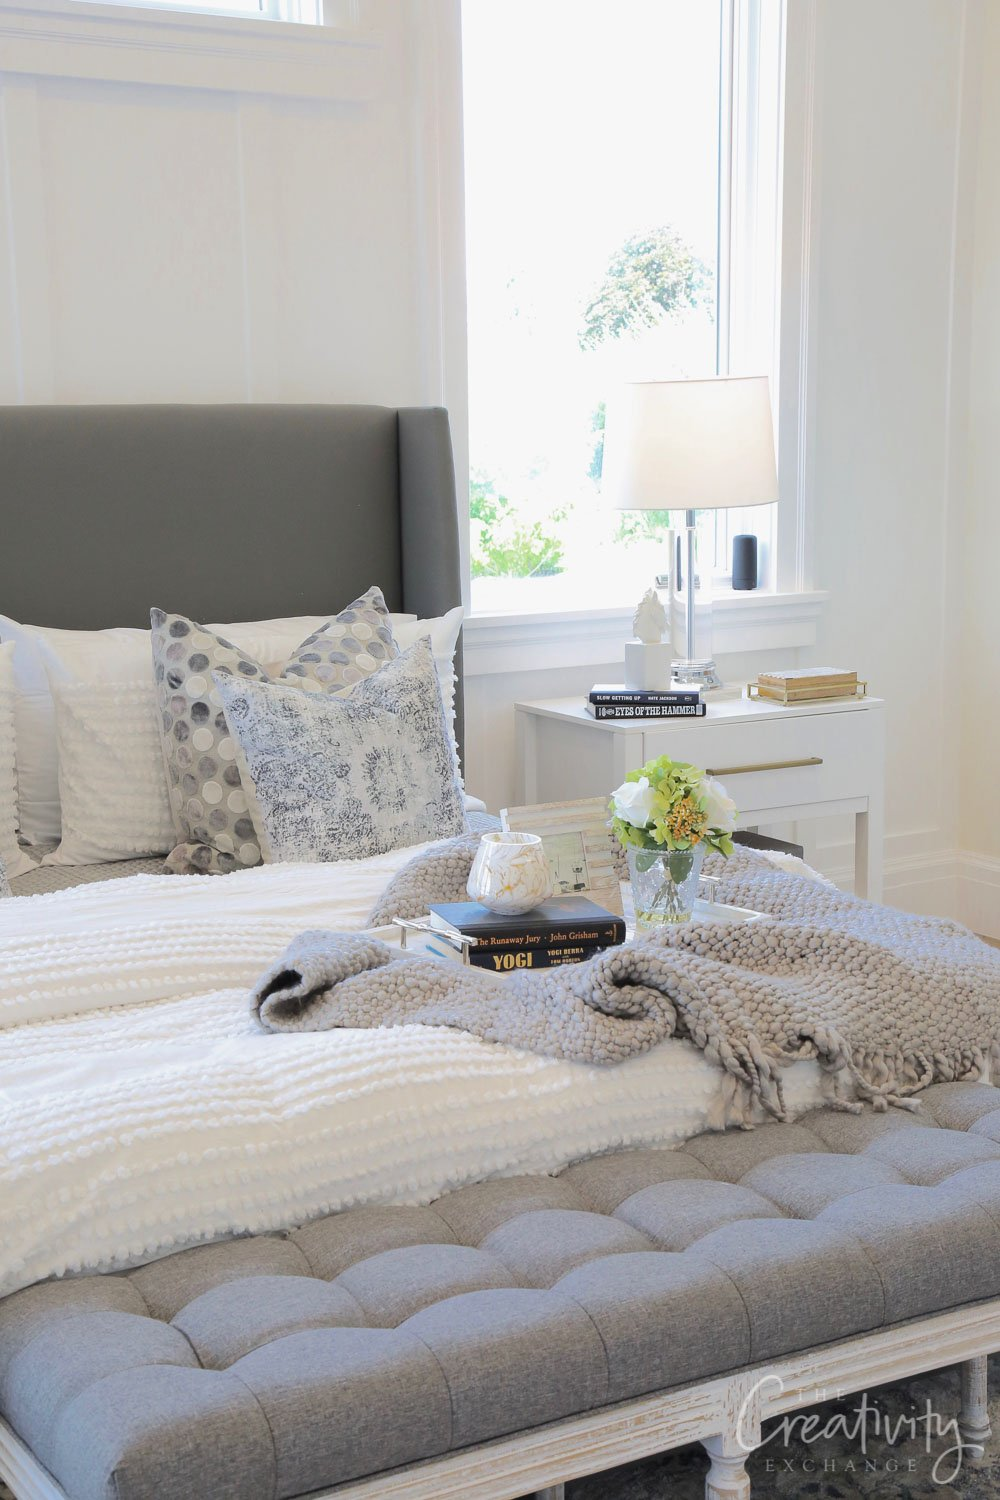 Master bedroom wall color is Benjamin Moore Simply White